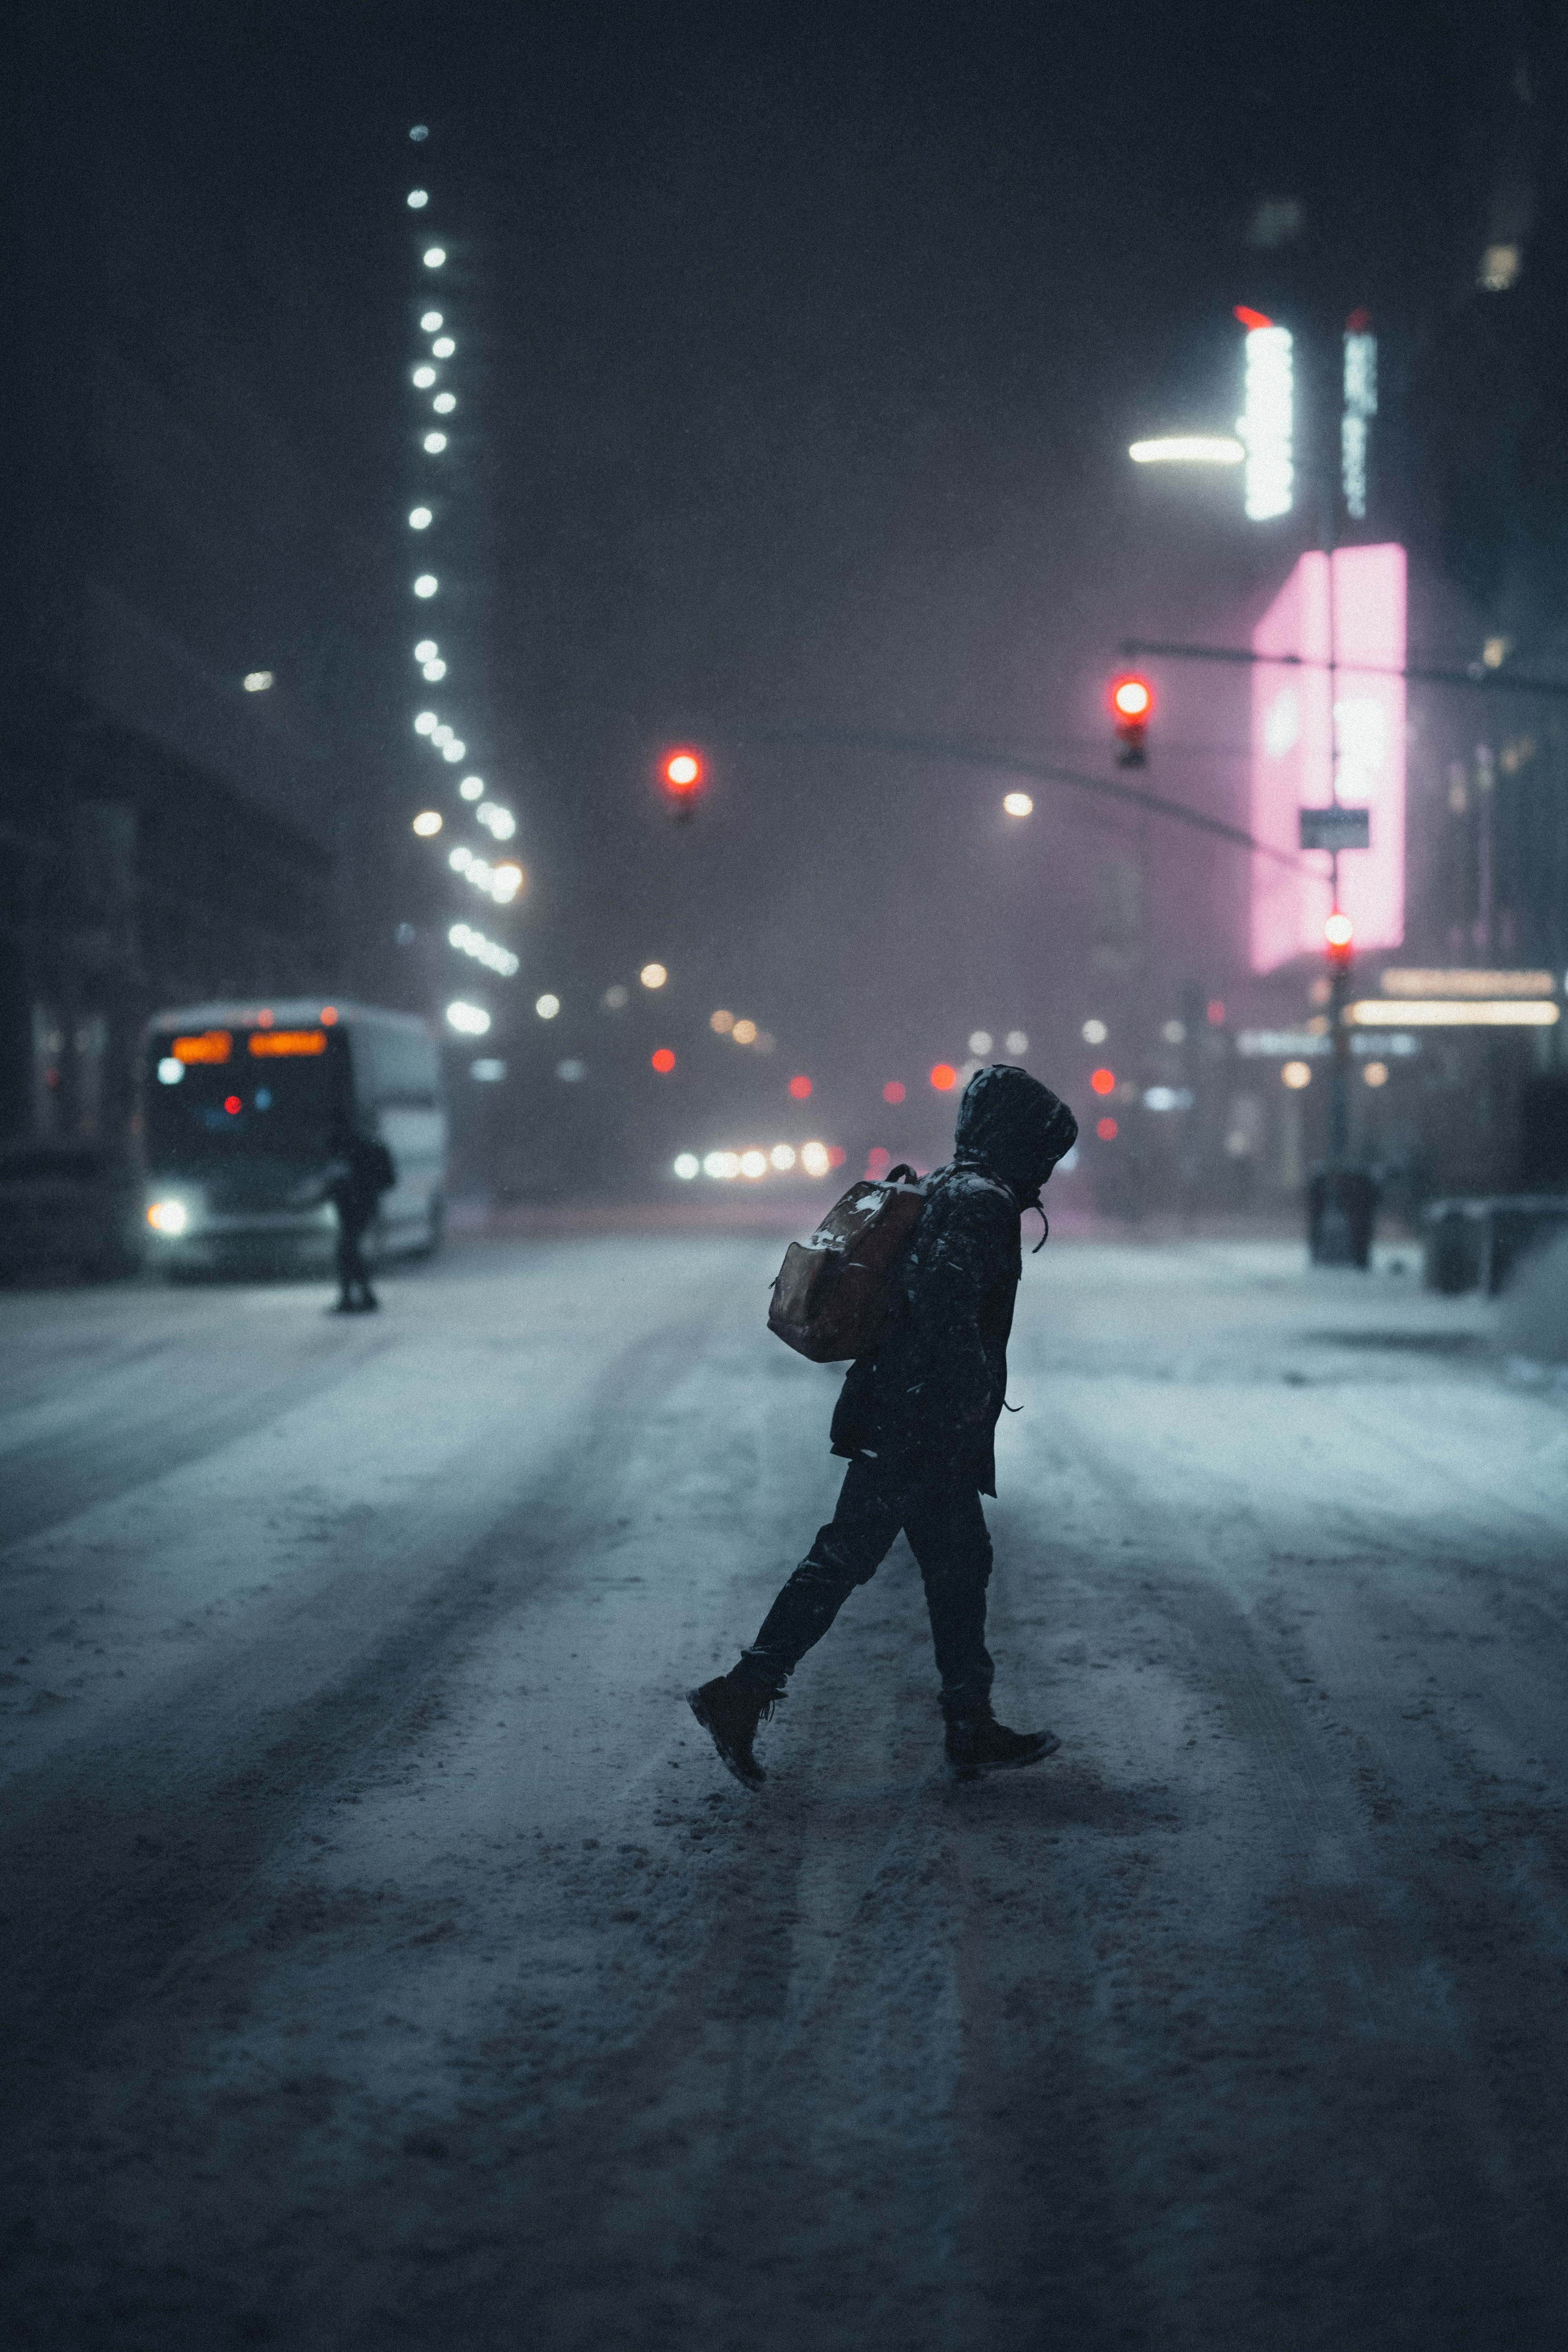 109537 Screensavers and Wallpapers Human for phone. Download Night, Snow, Miscellanea, Miscellaneous, Human, Person, Street pictures for free